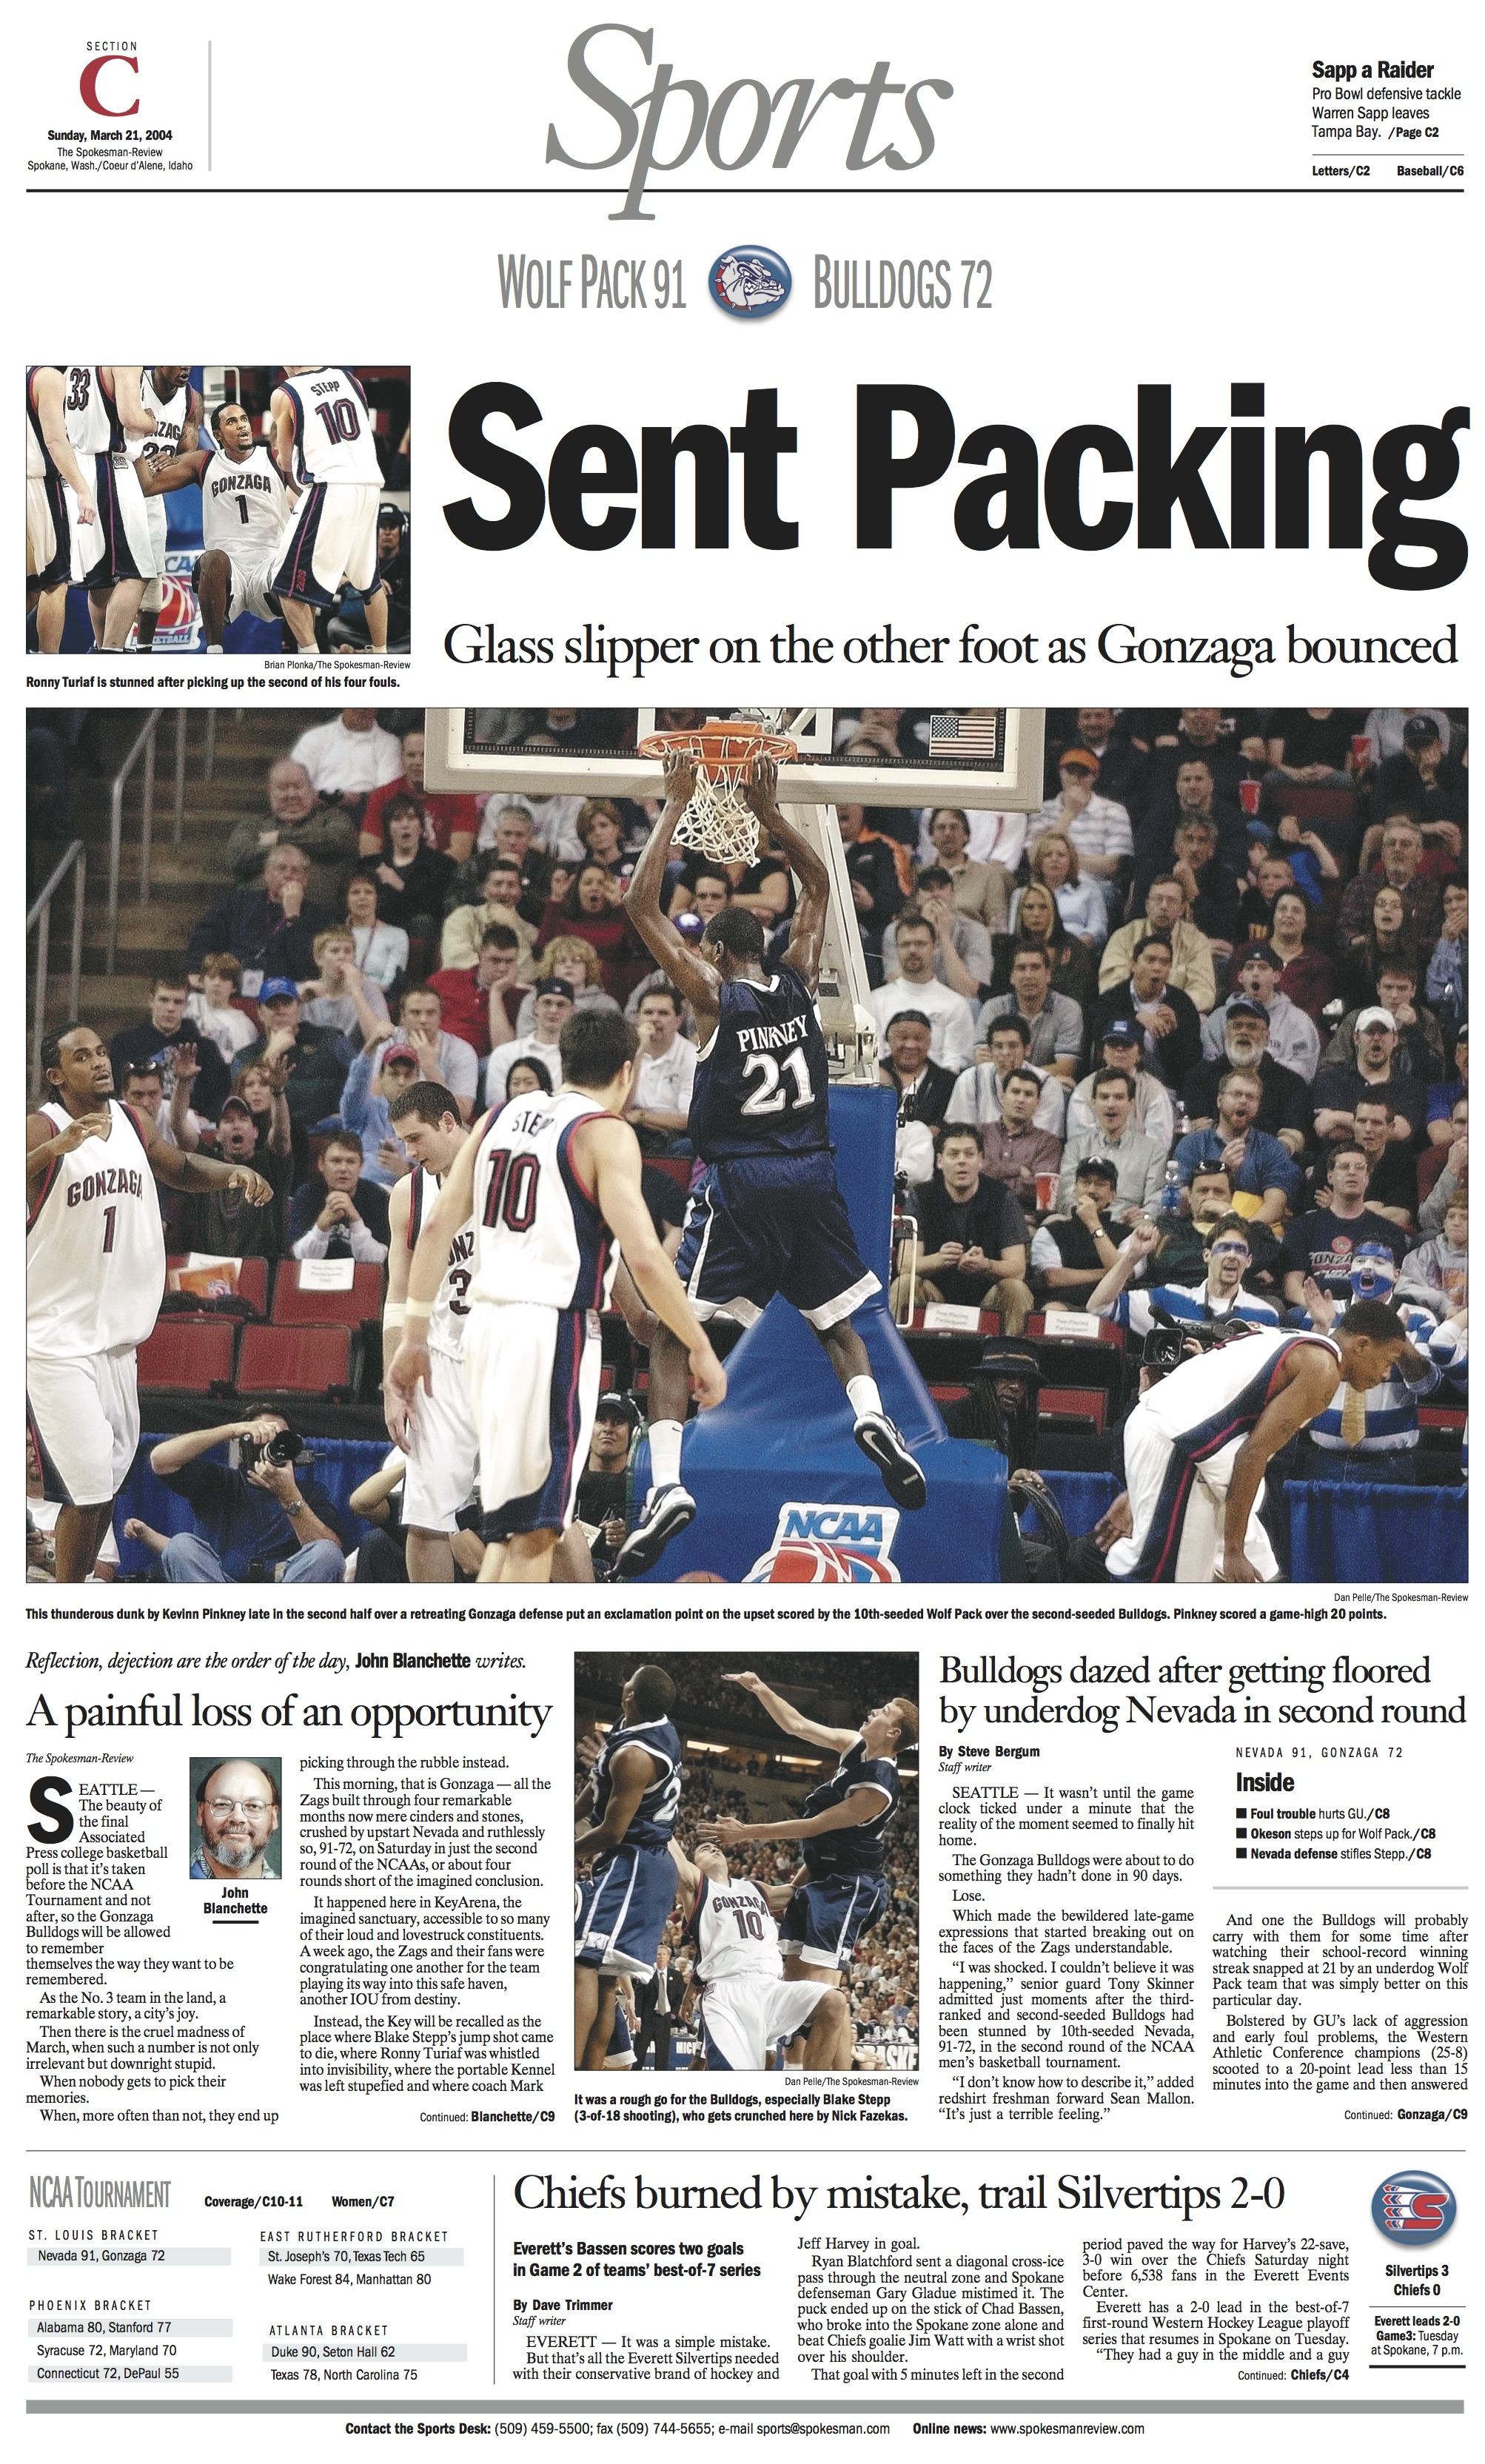 Historic page: Mar. 21, 2004